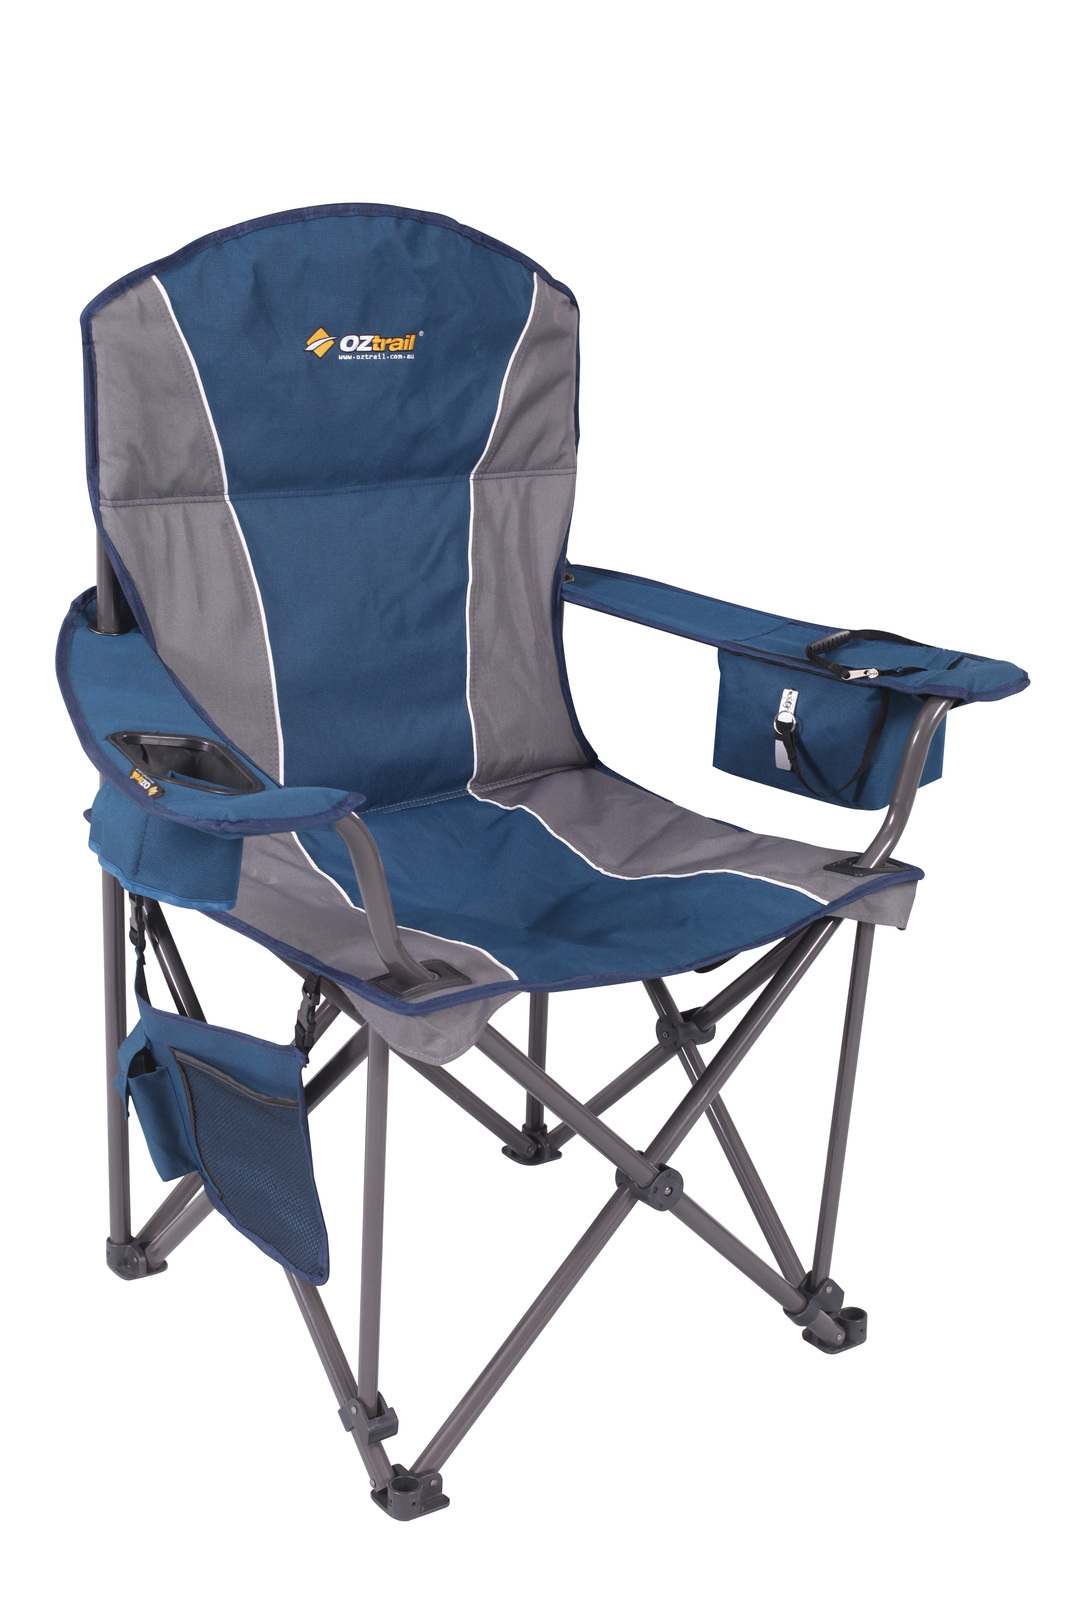 vision fishing chair covers for evening reception oztrail titan arm tentworld